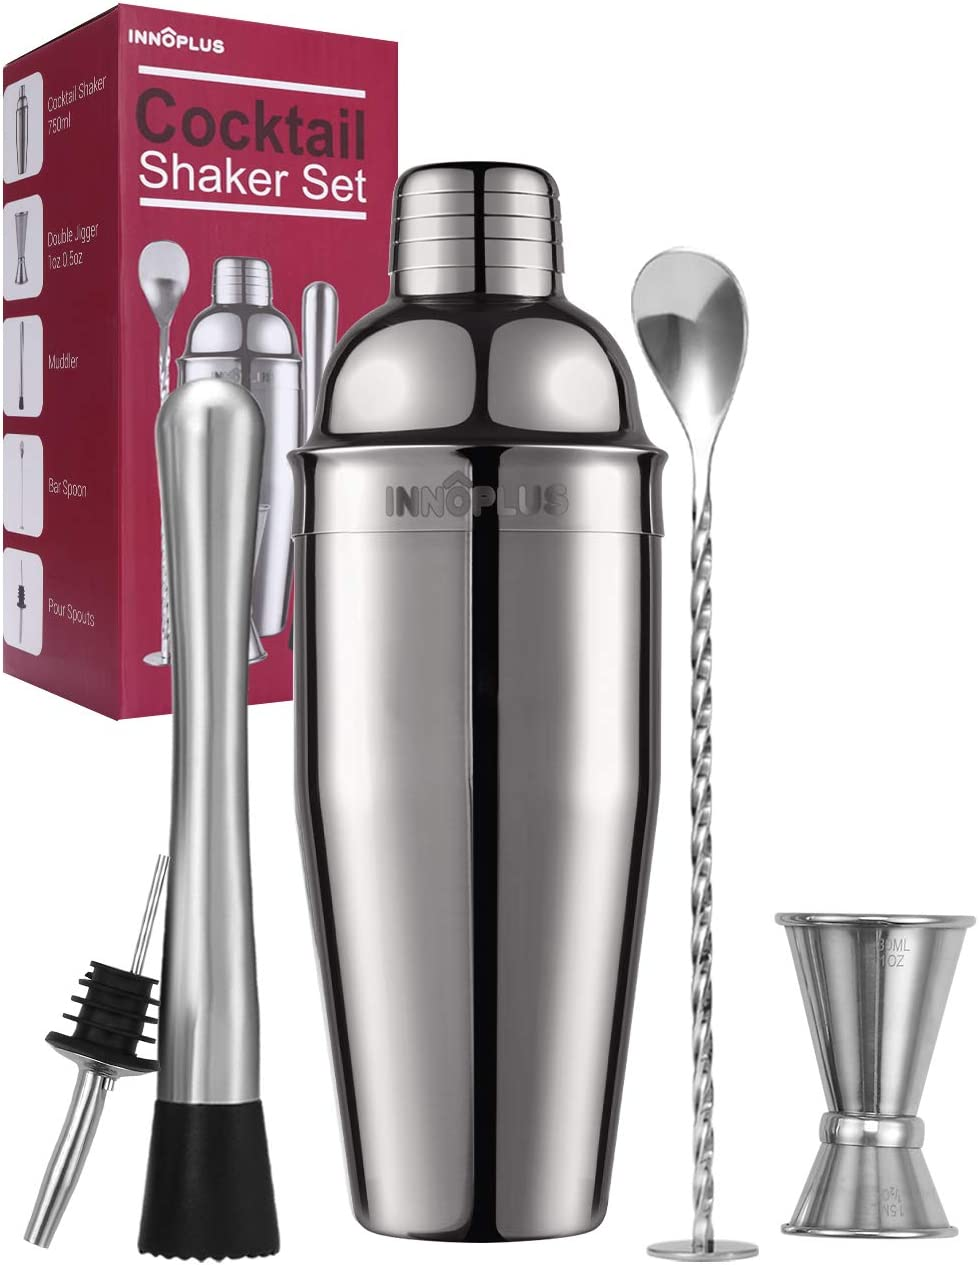 This is an image of a cocktail shaker set in chrome and a red box for storage.